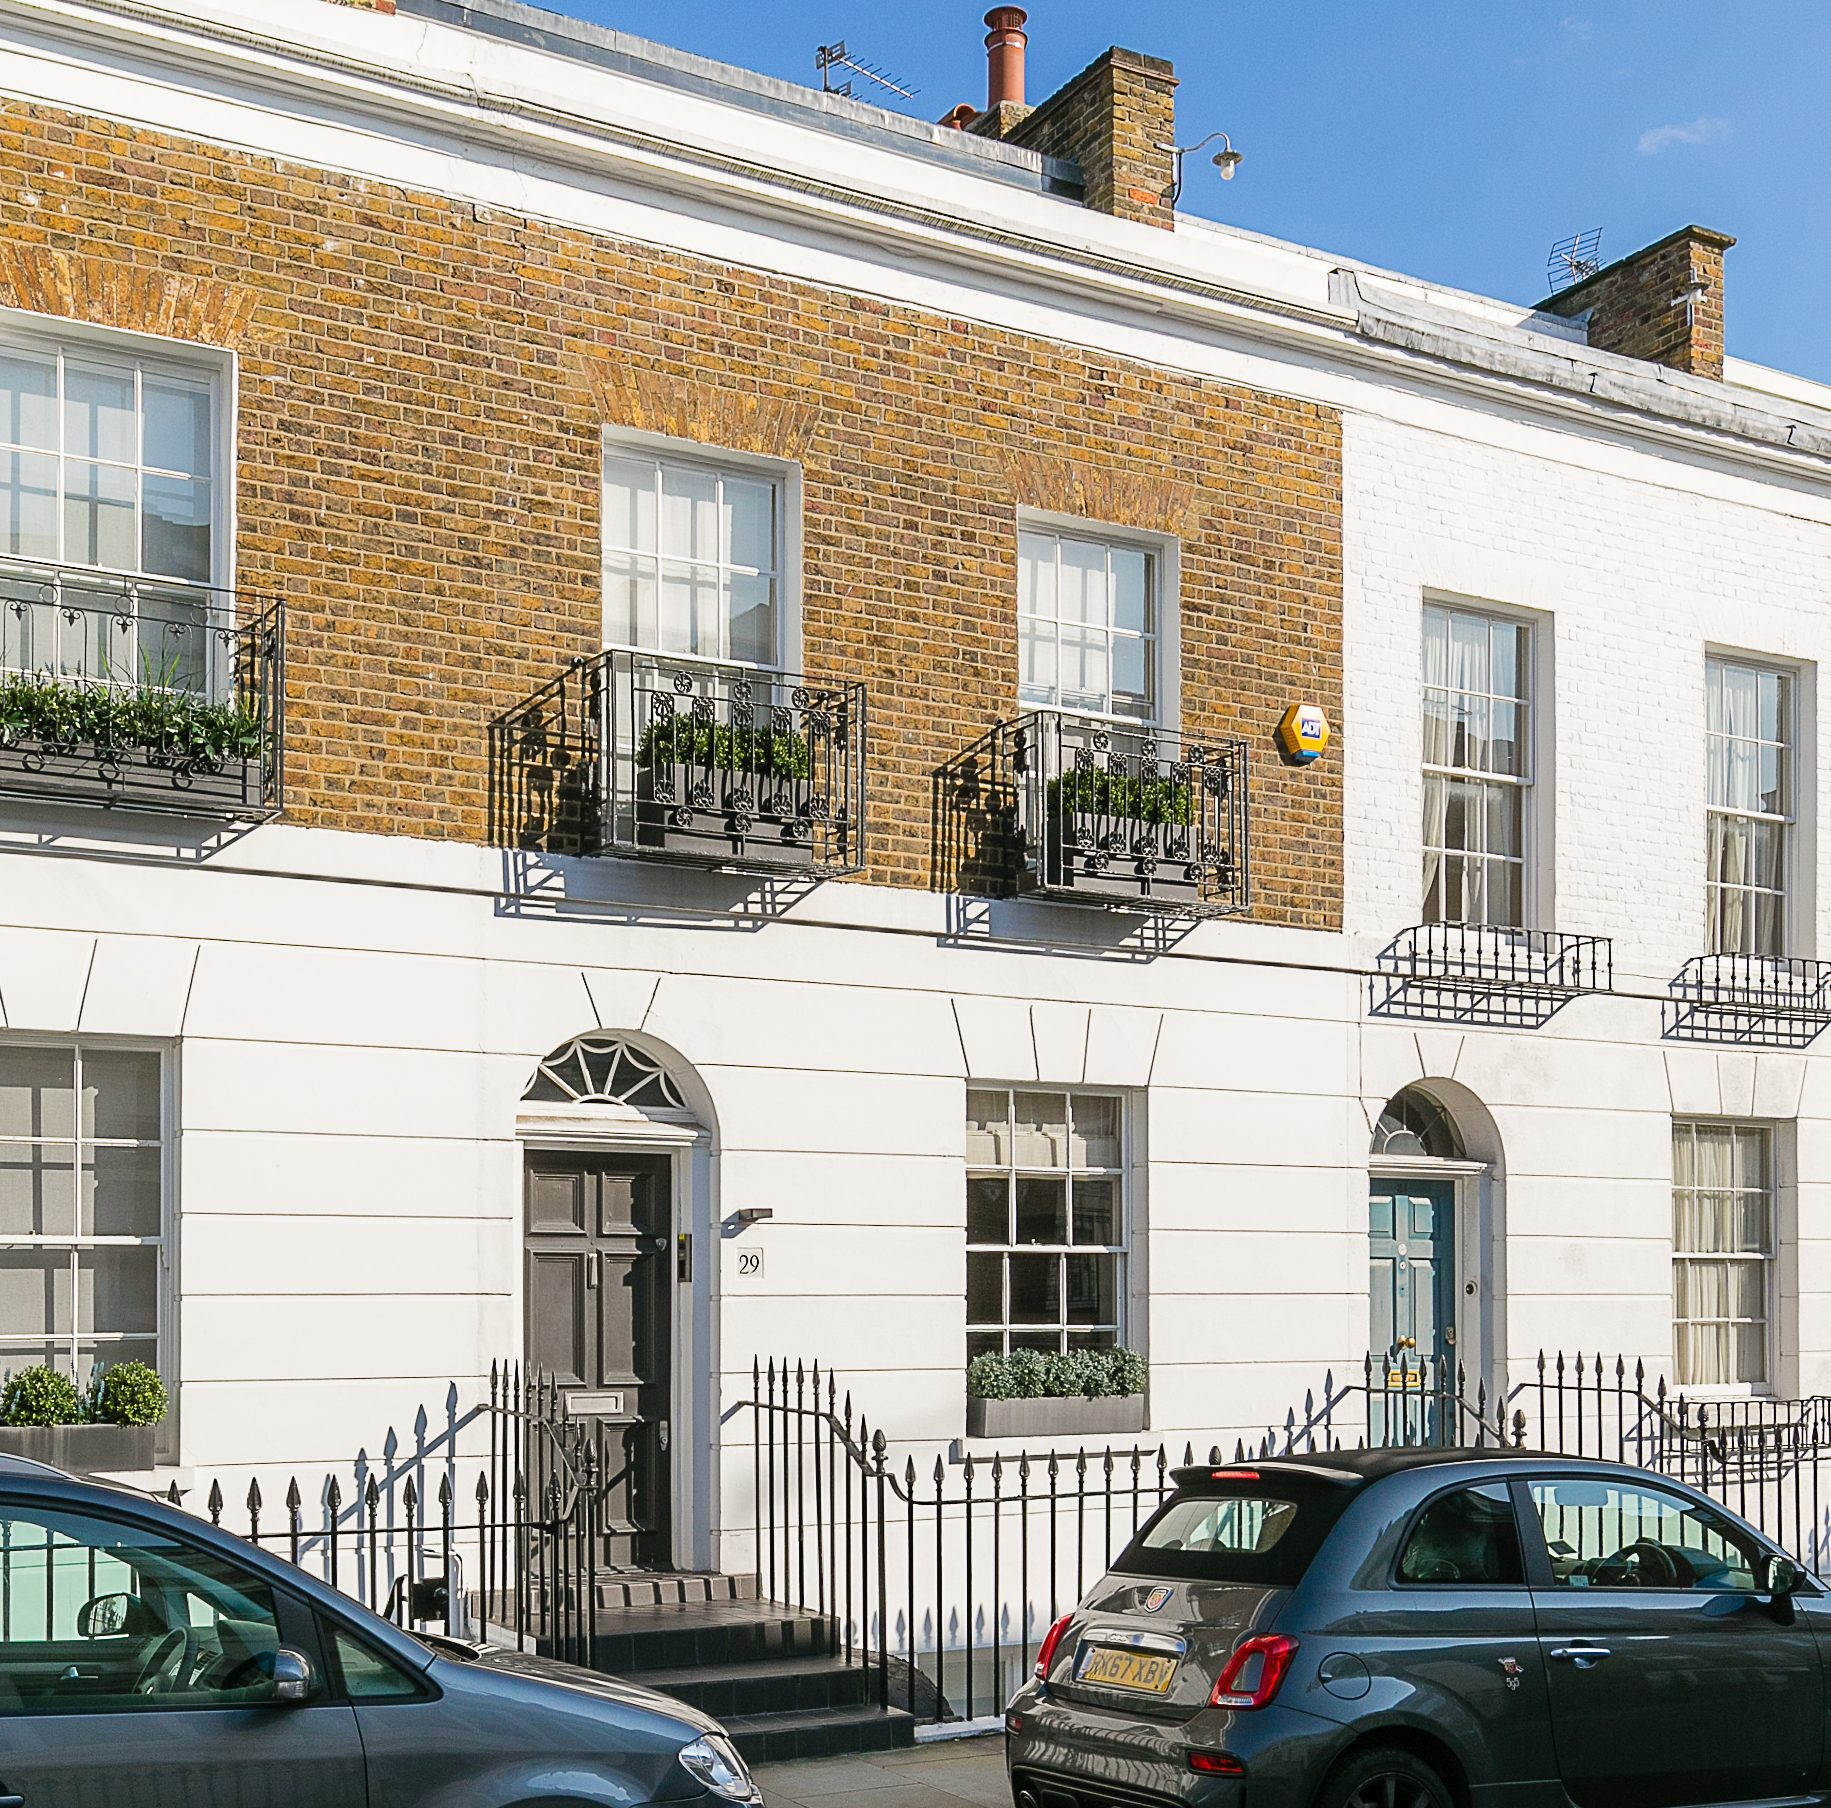 The former Chelsea home of the creator of Mary Poppins that's practically perfect in every way